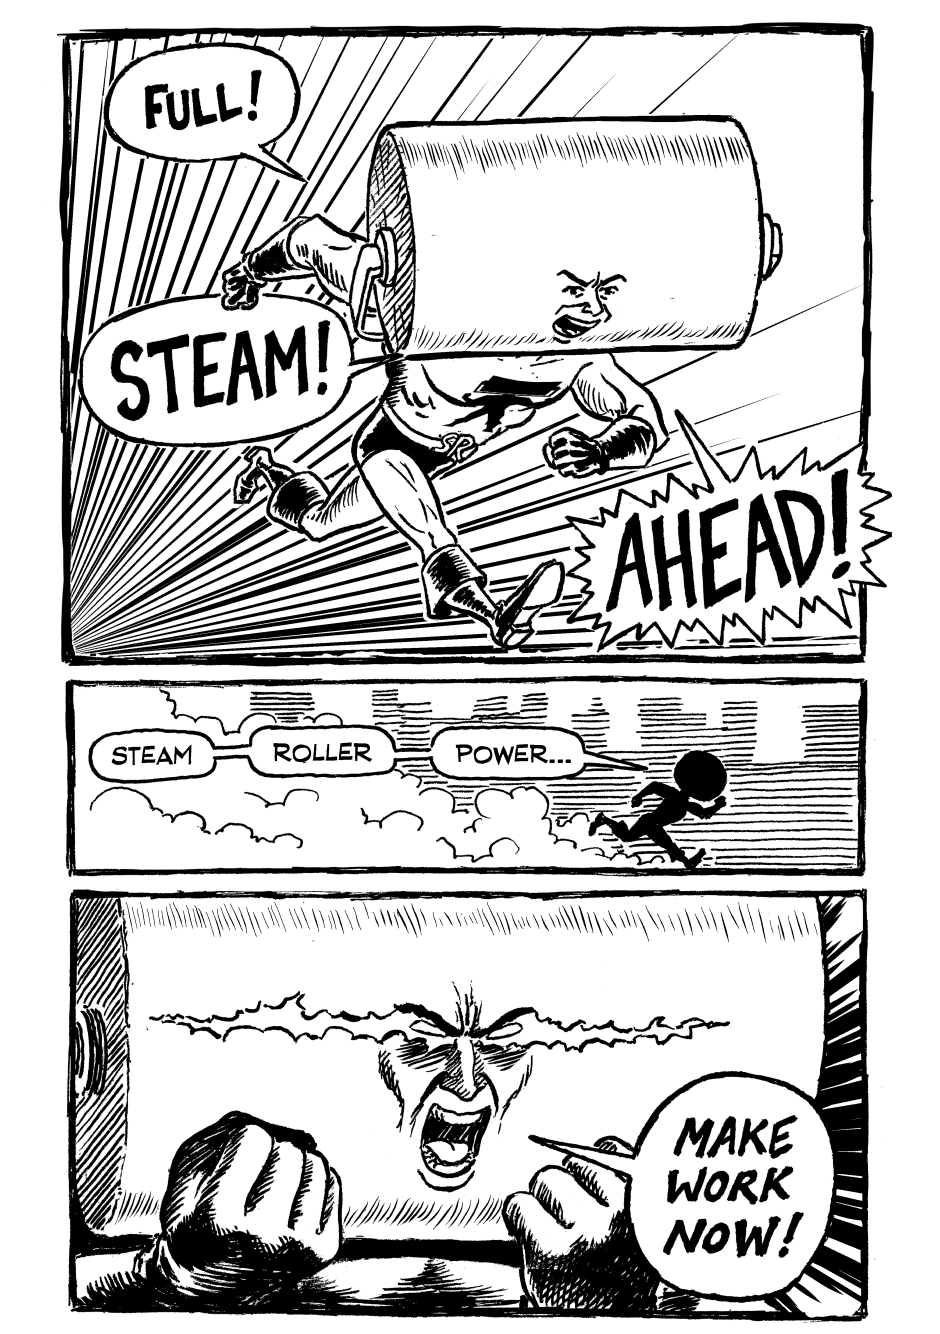 Issue One, Page Seven